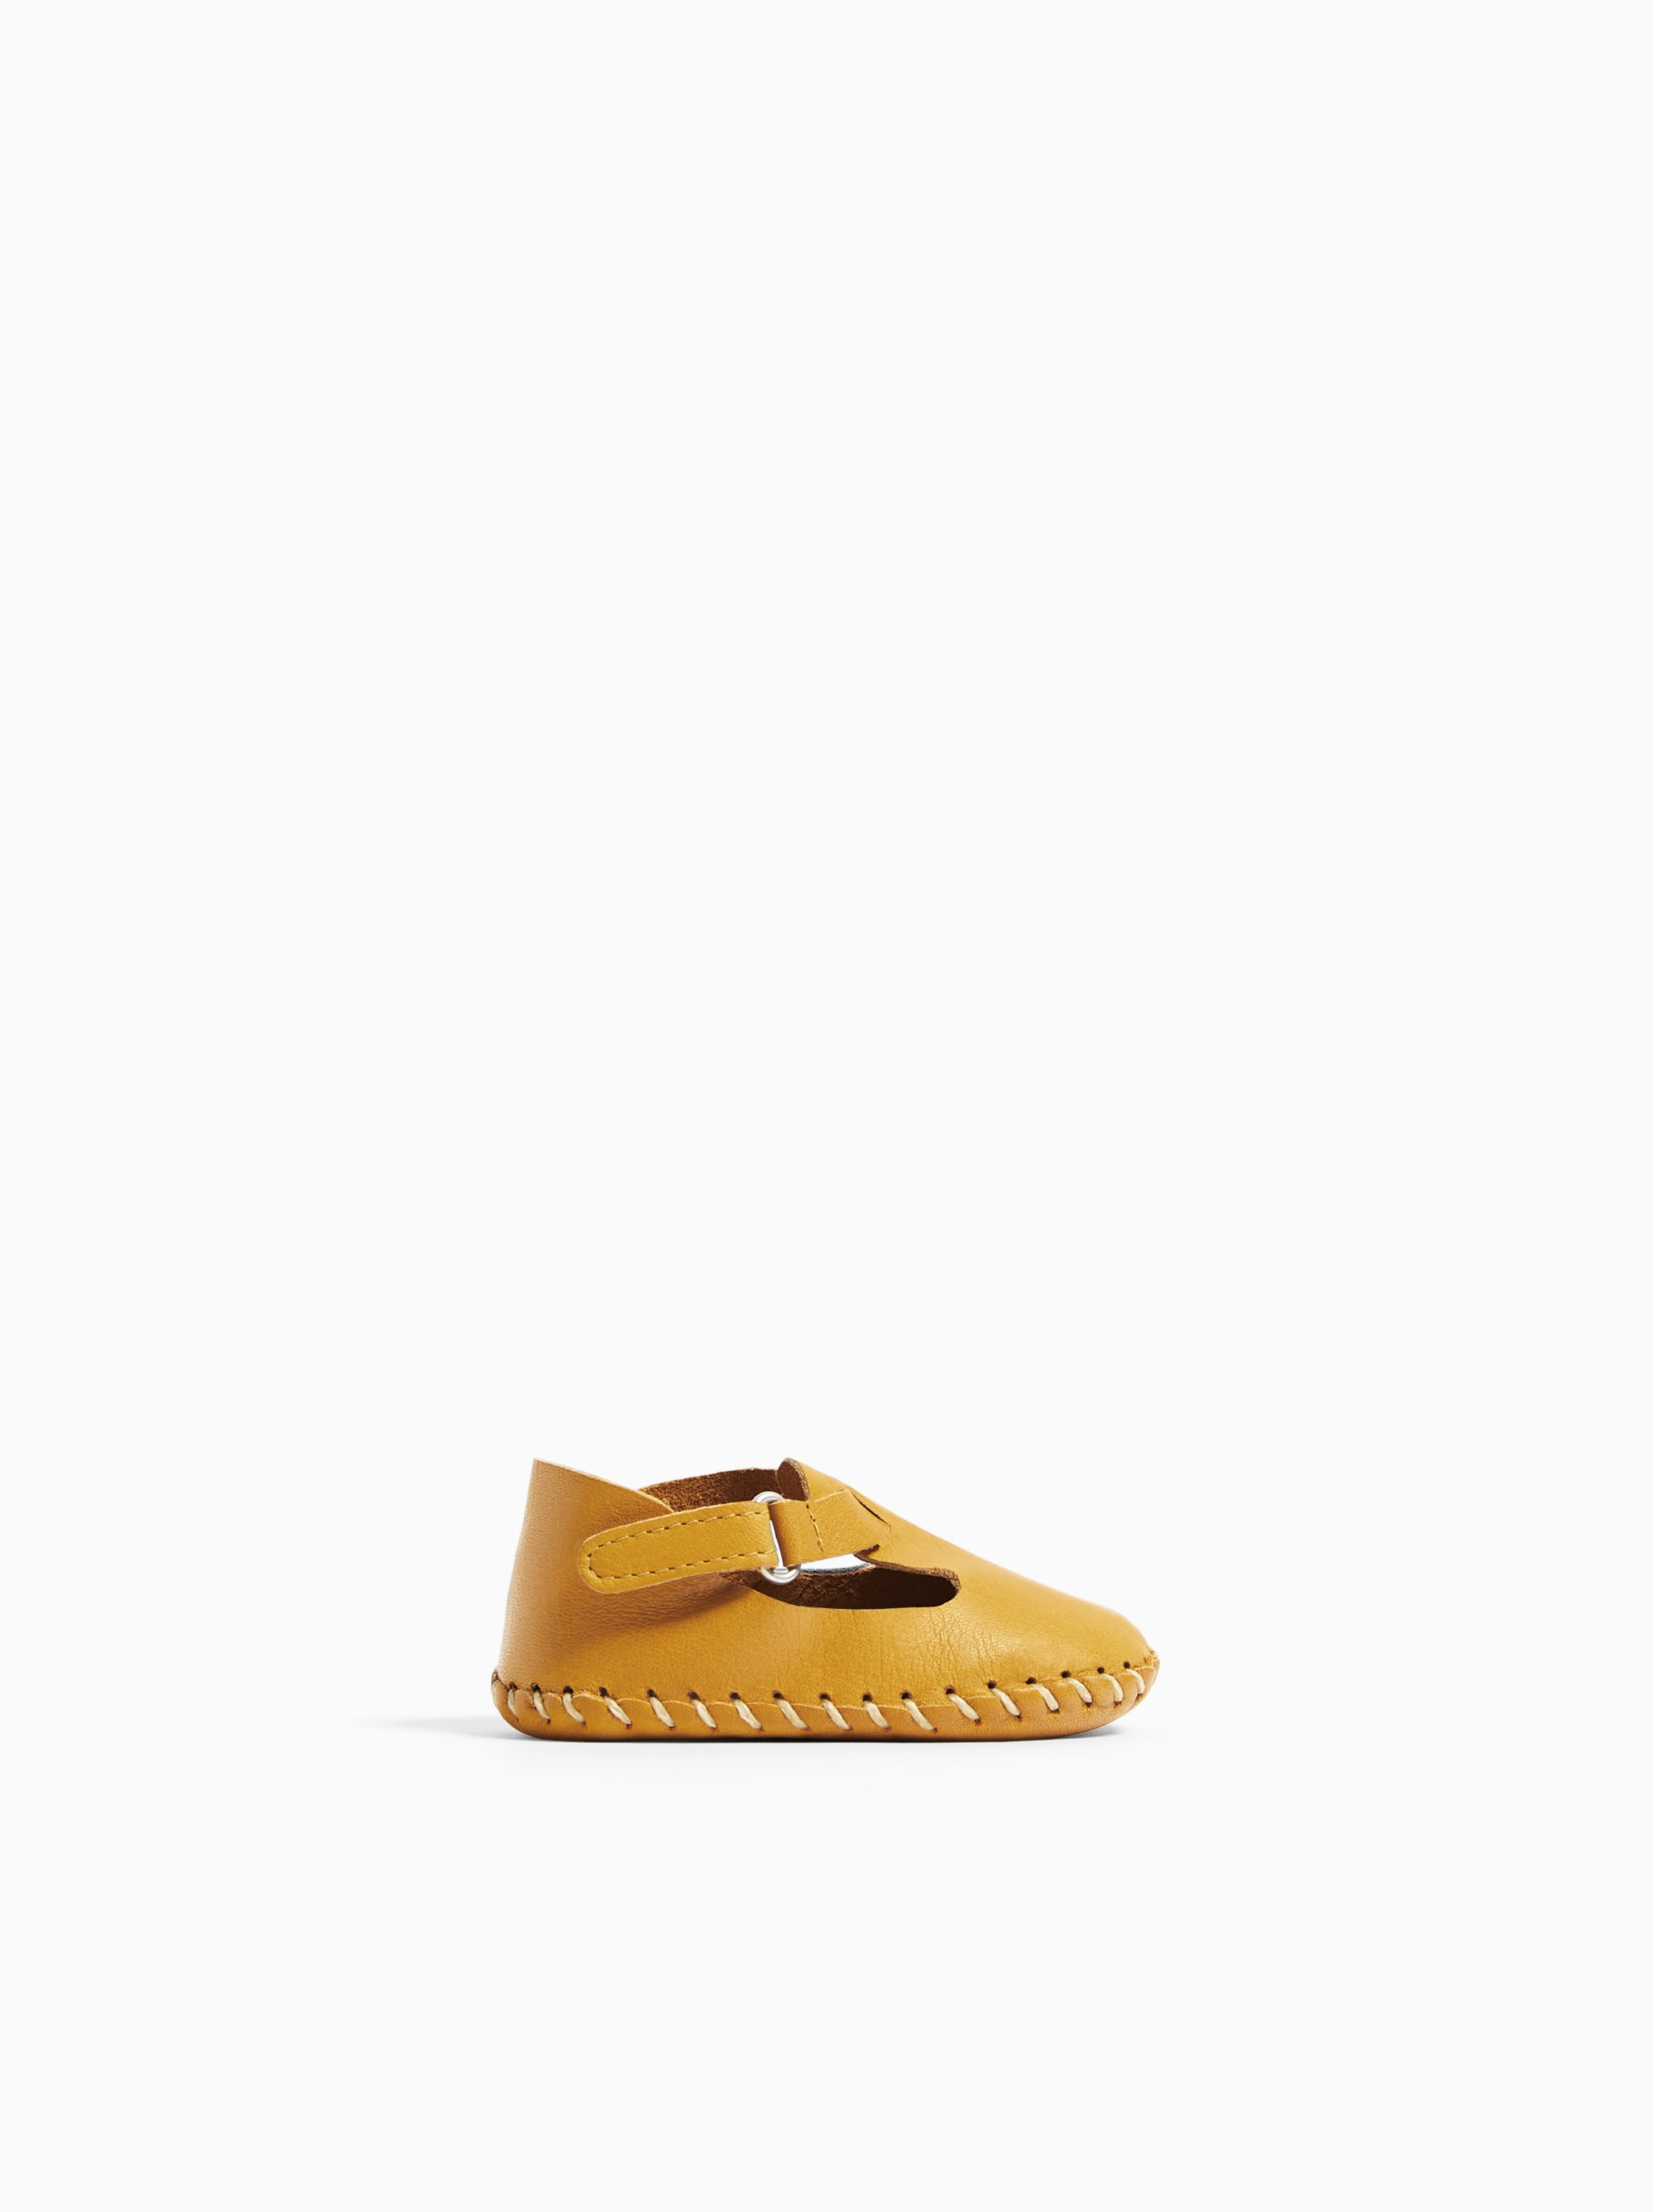 Zara LEATHER SHOES WITH TOPSTITCHING